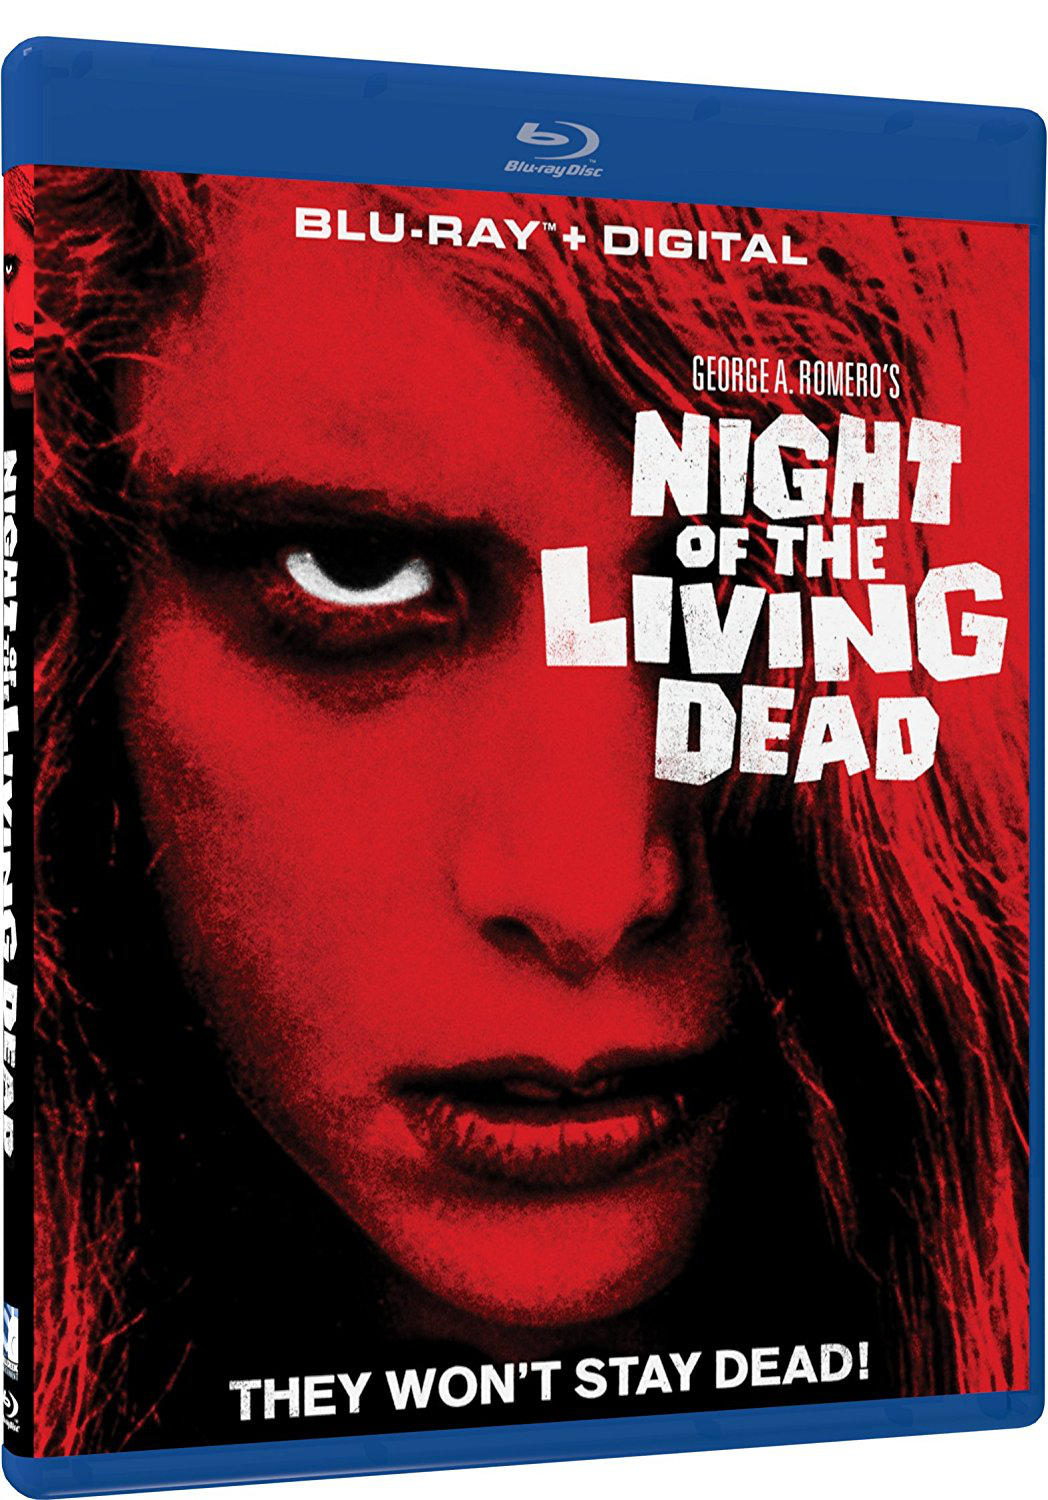 Night Of The Living Dead Farmhouse George A Romero 39s Night Of The Living Dead Coming To Blu